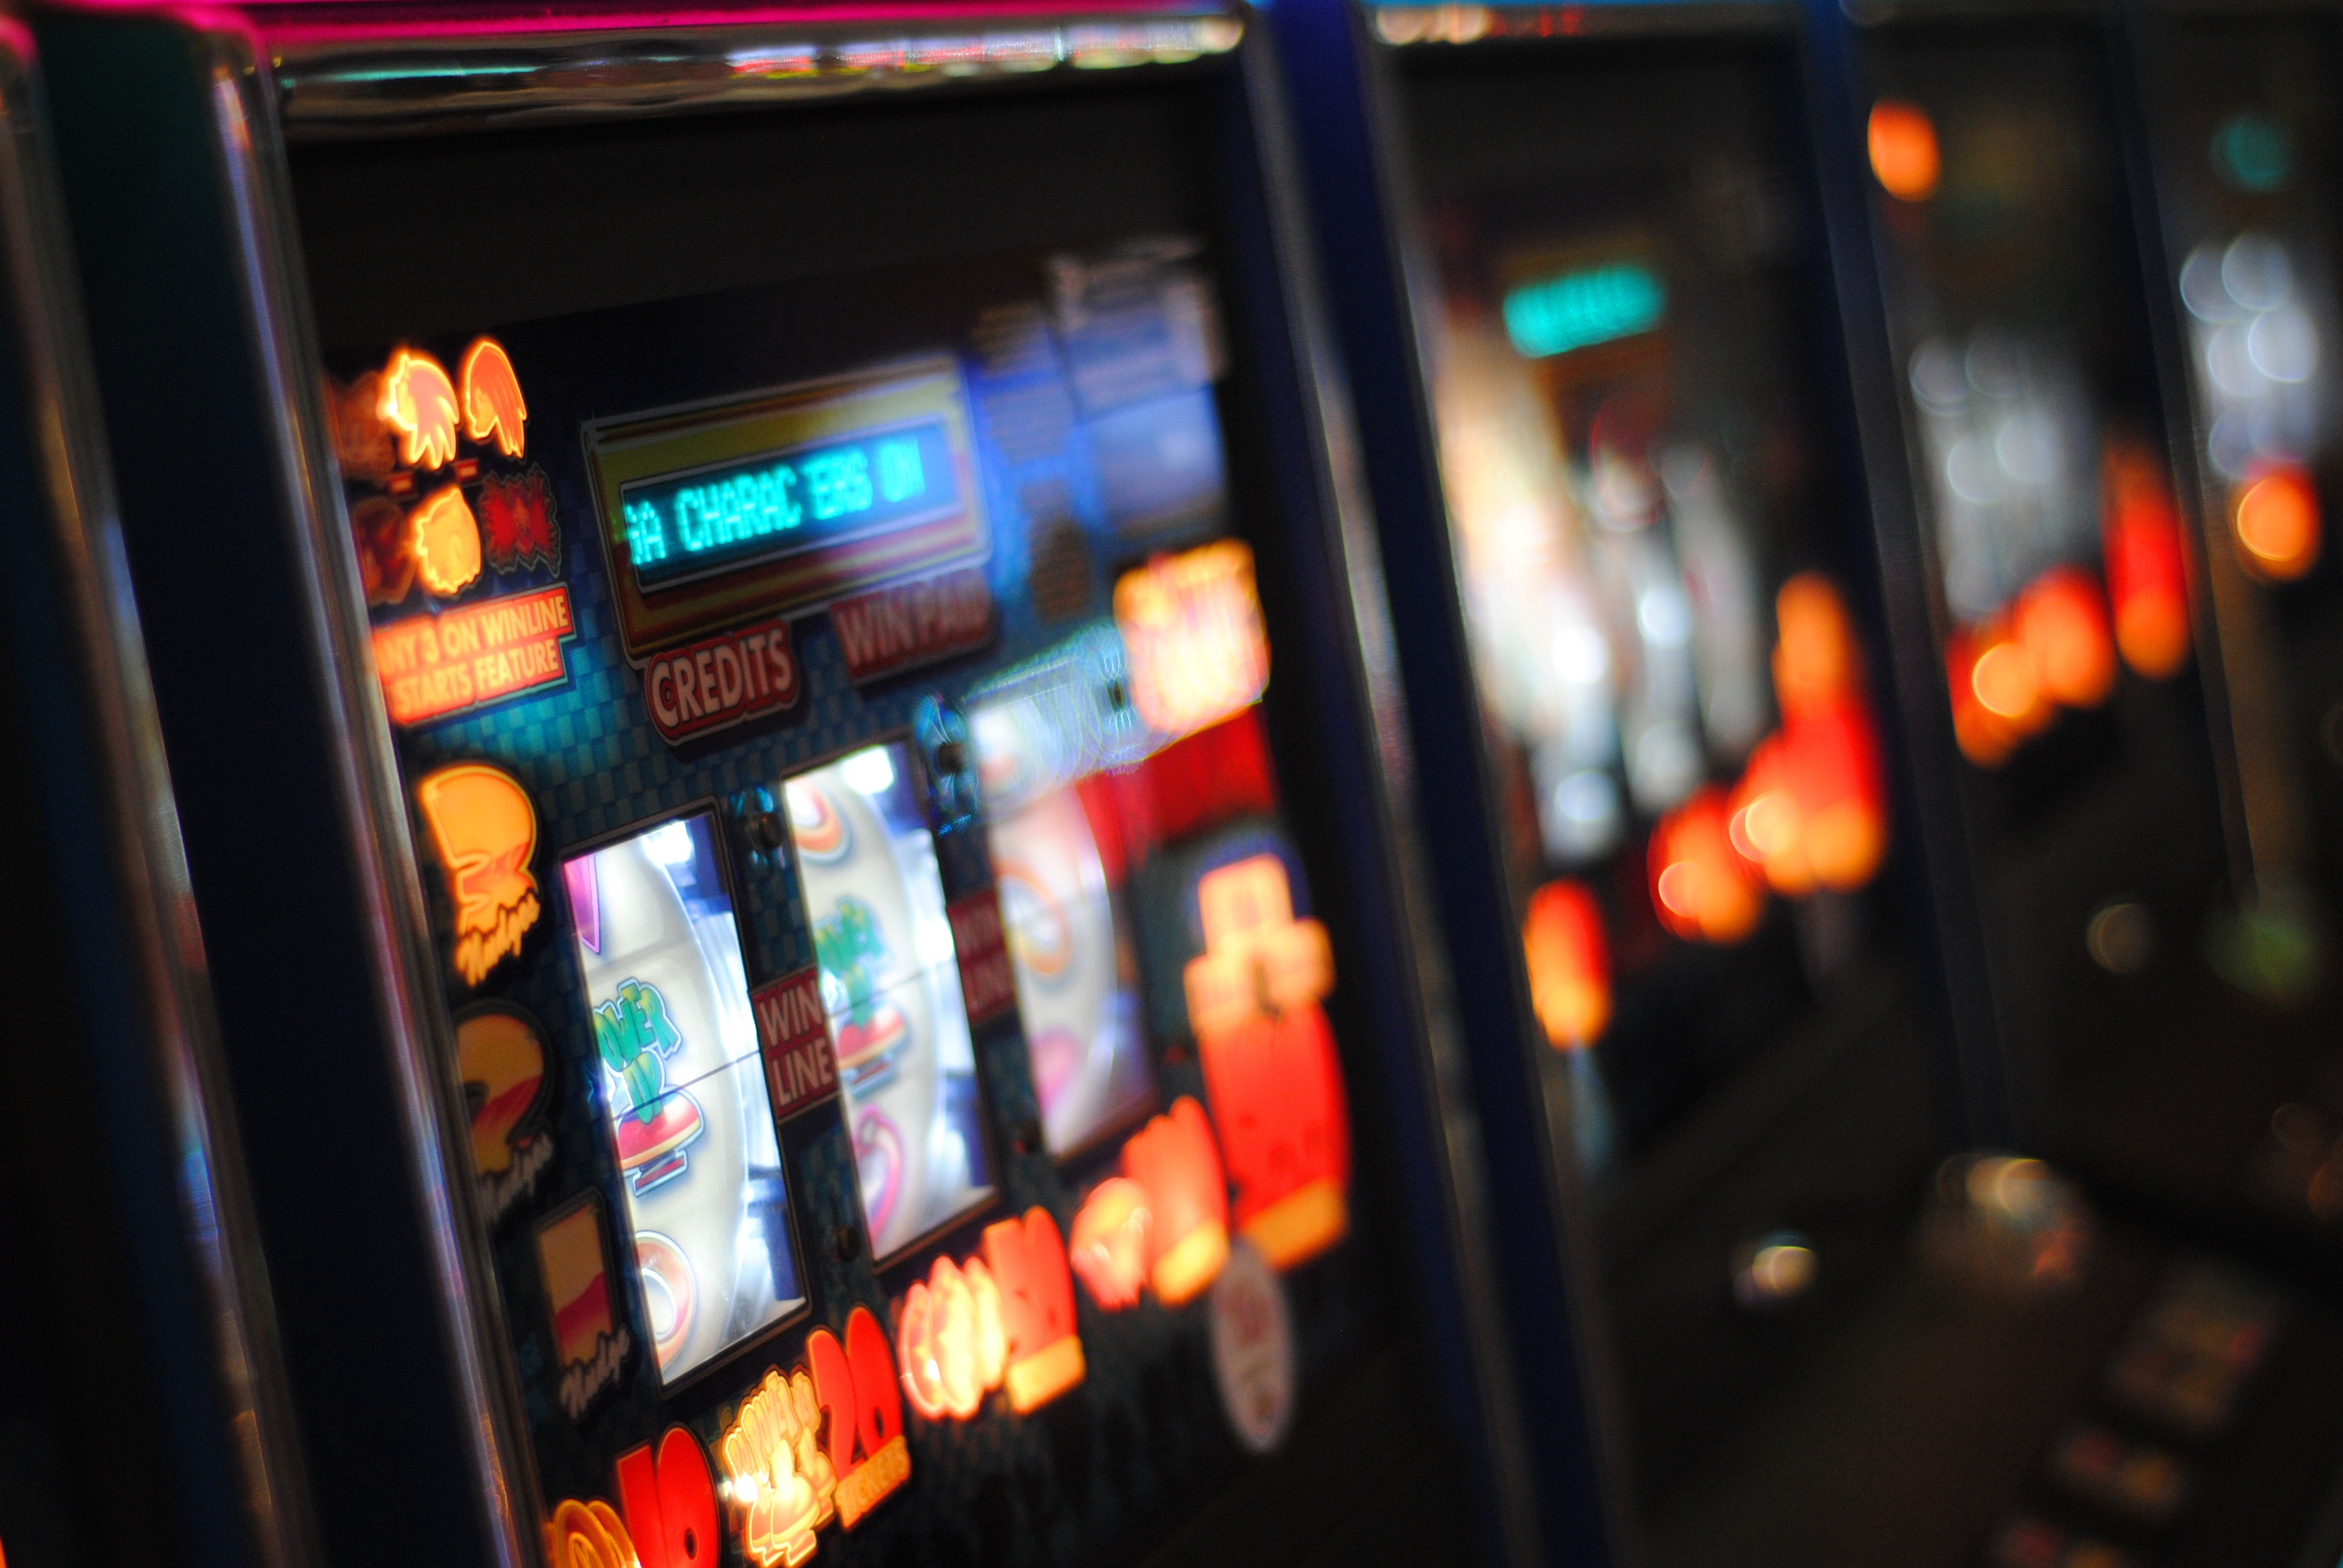 Regional gambling data points to a recovery in discretionary spending in key regional cities